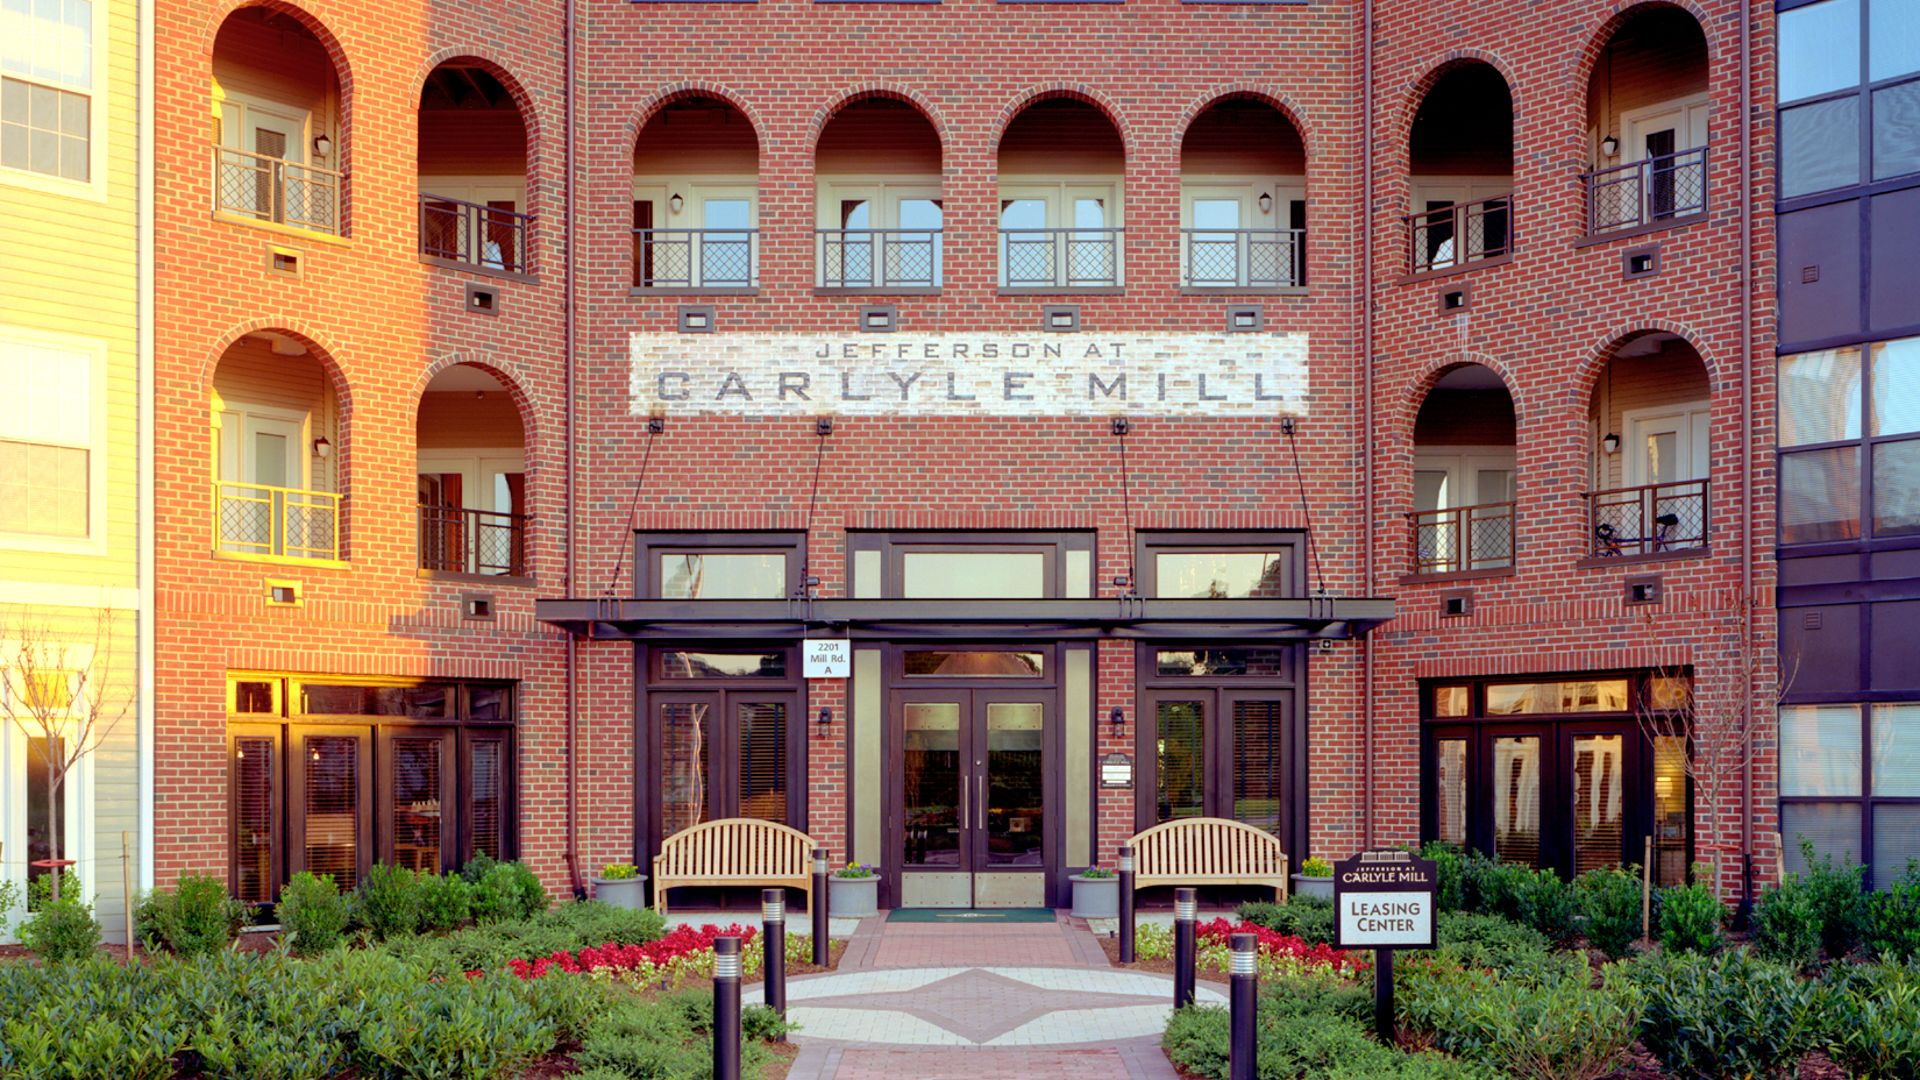 carlyle mill apartments in old town alexandria 2201 mill road